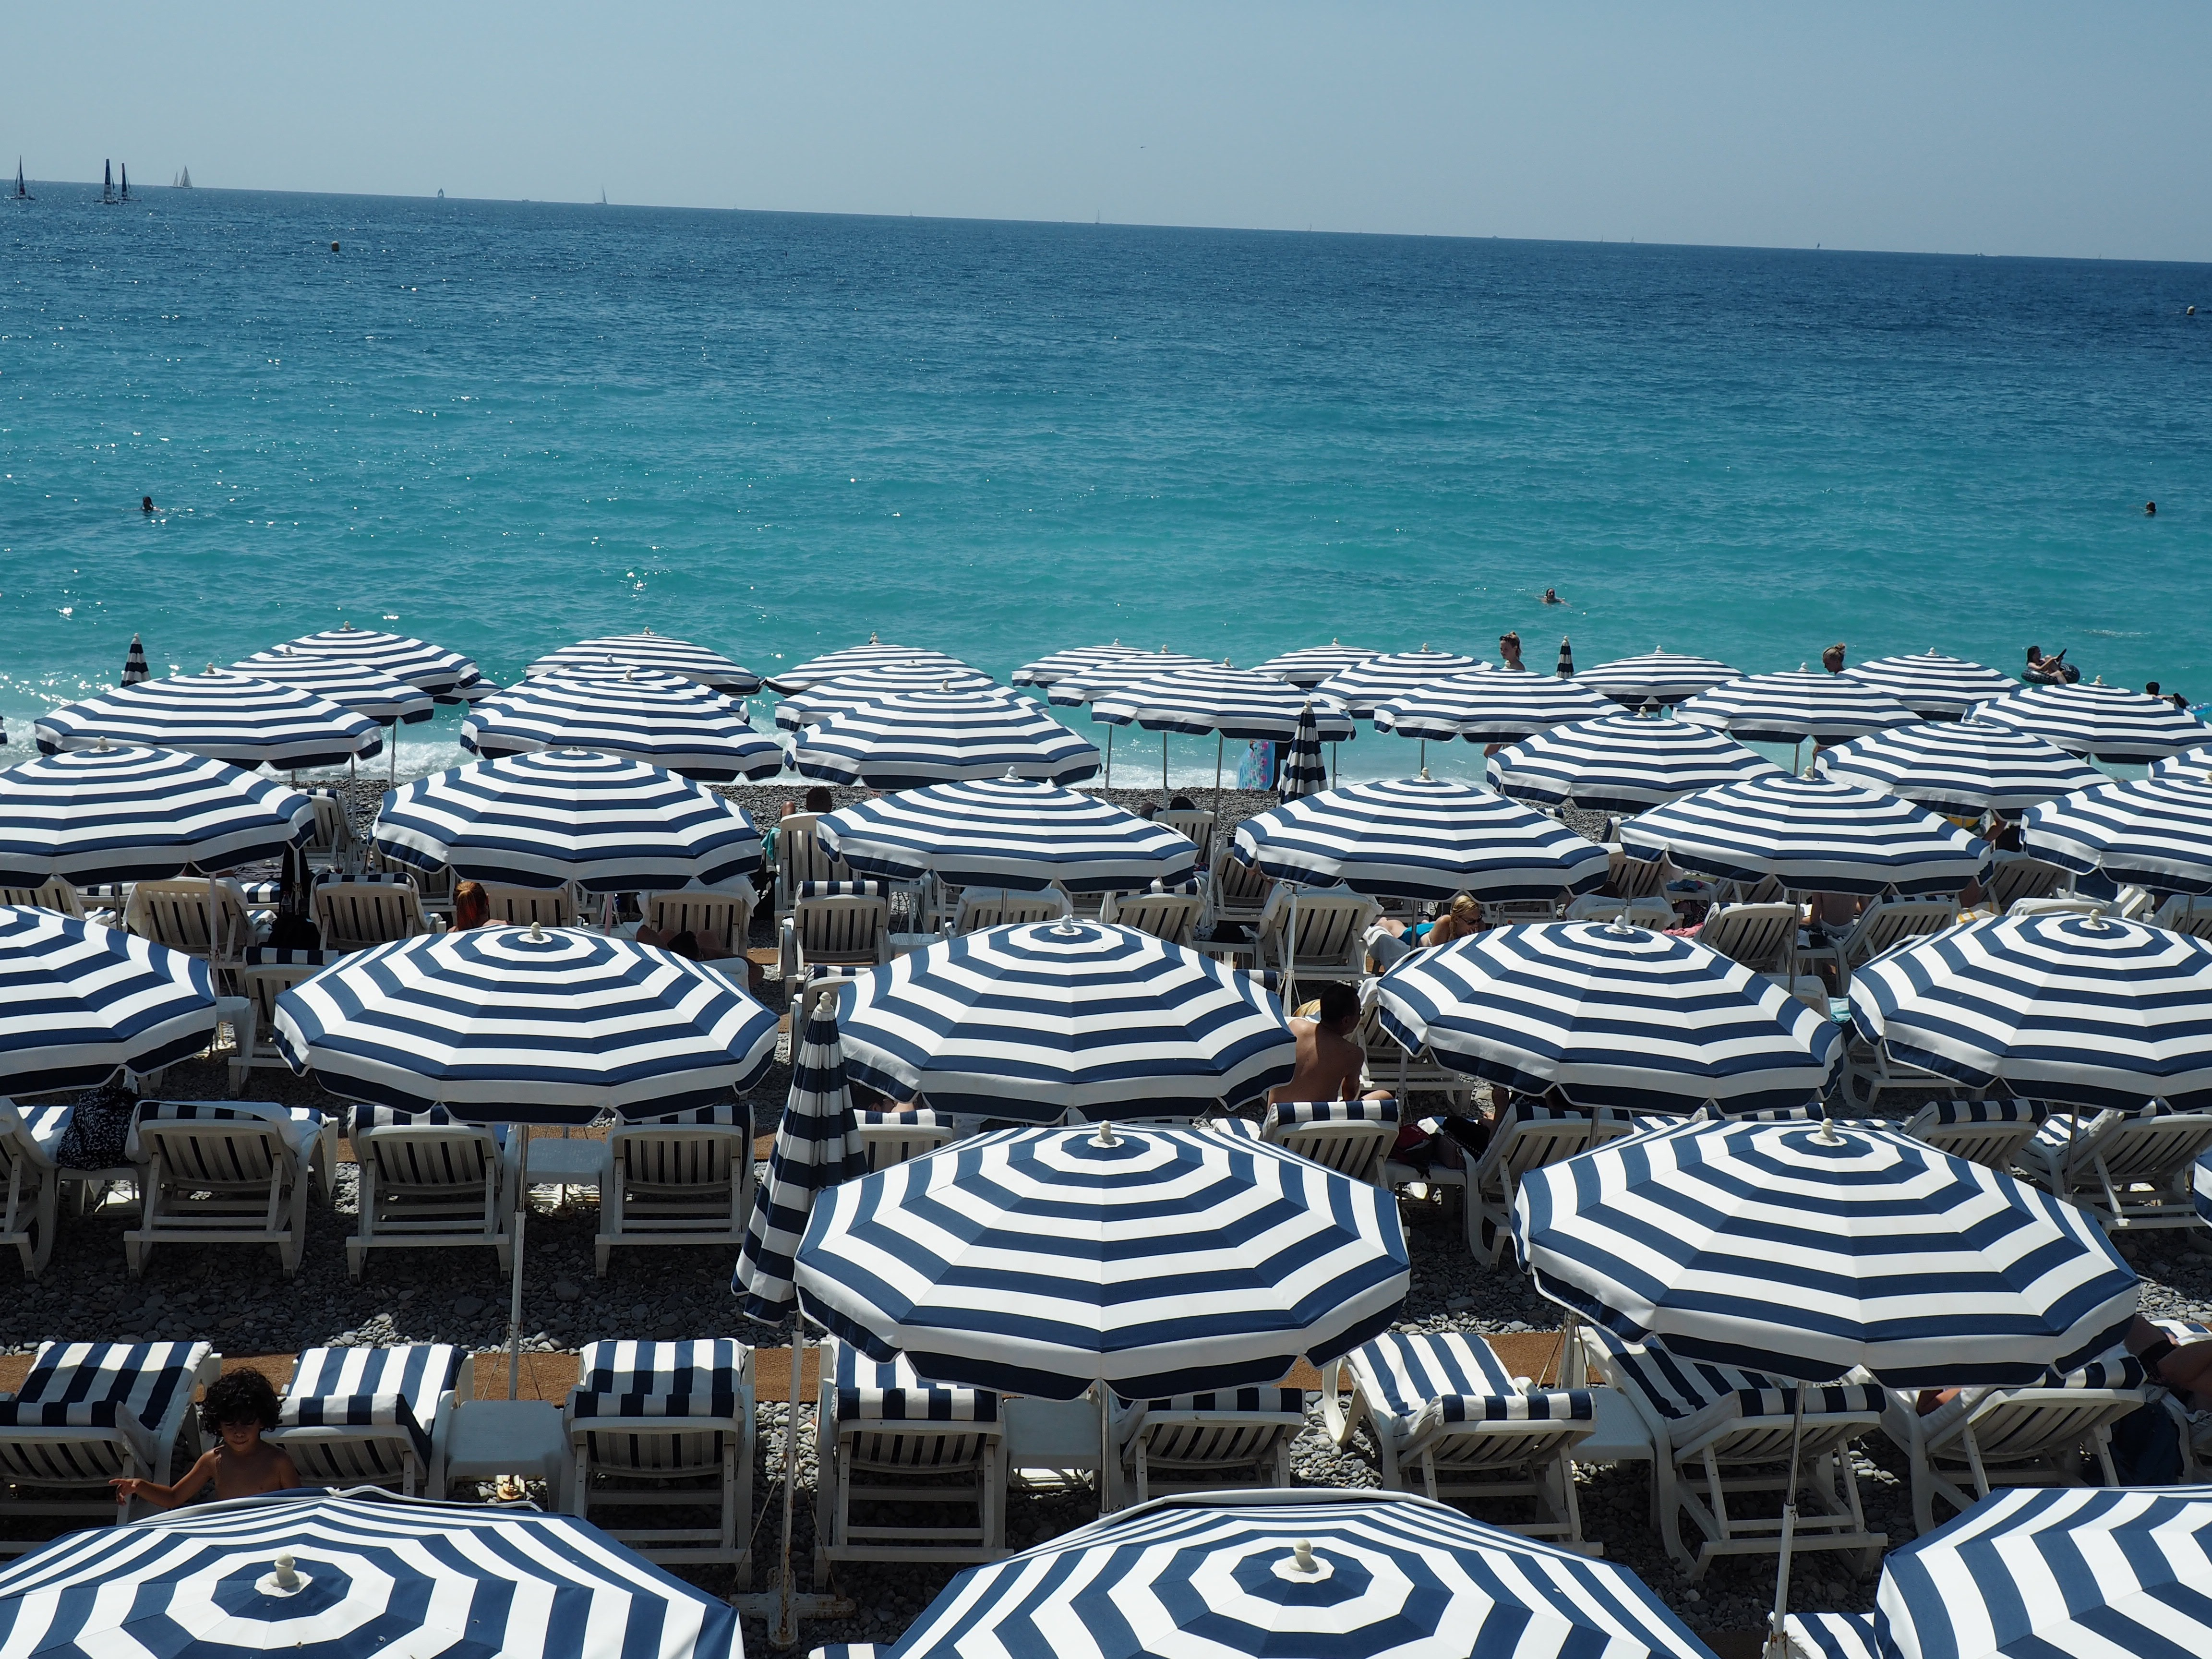 THE SIGHTS AND SOUNDS OF THE FRENCH RIVIERA: PHOTO DIARY